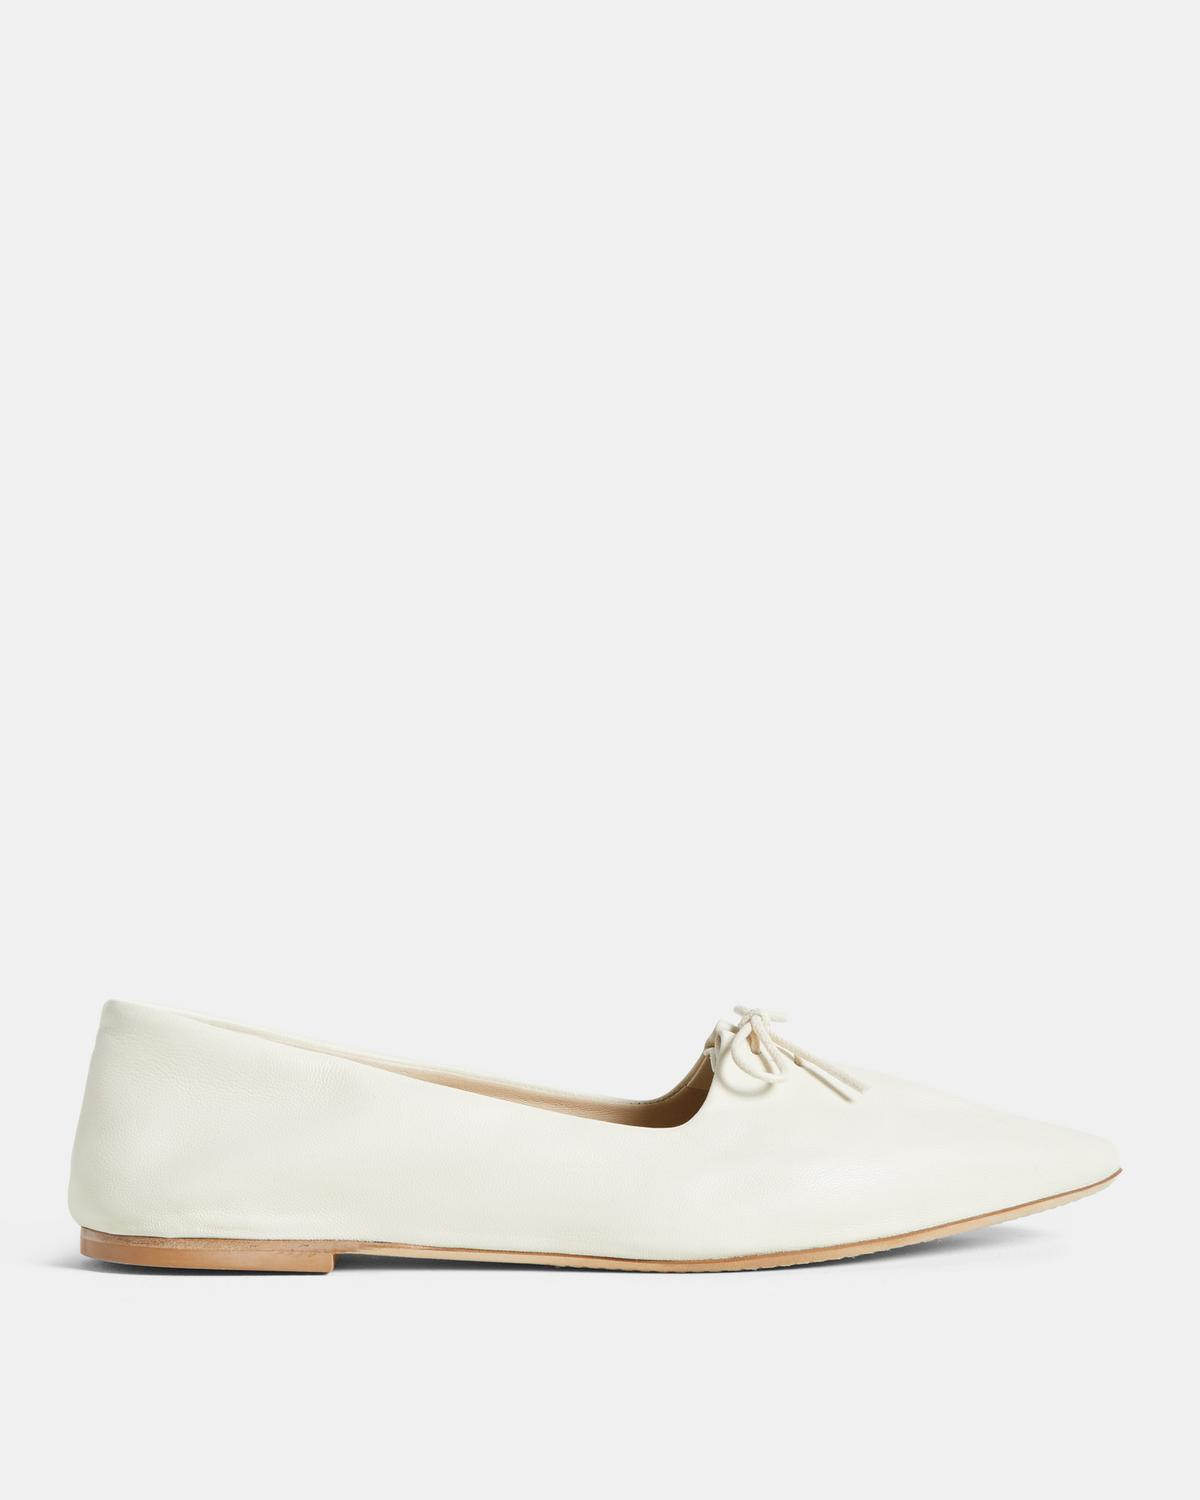 Leather Pleated Ballet Flat